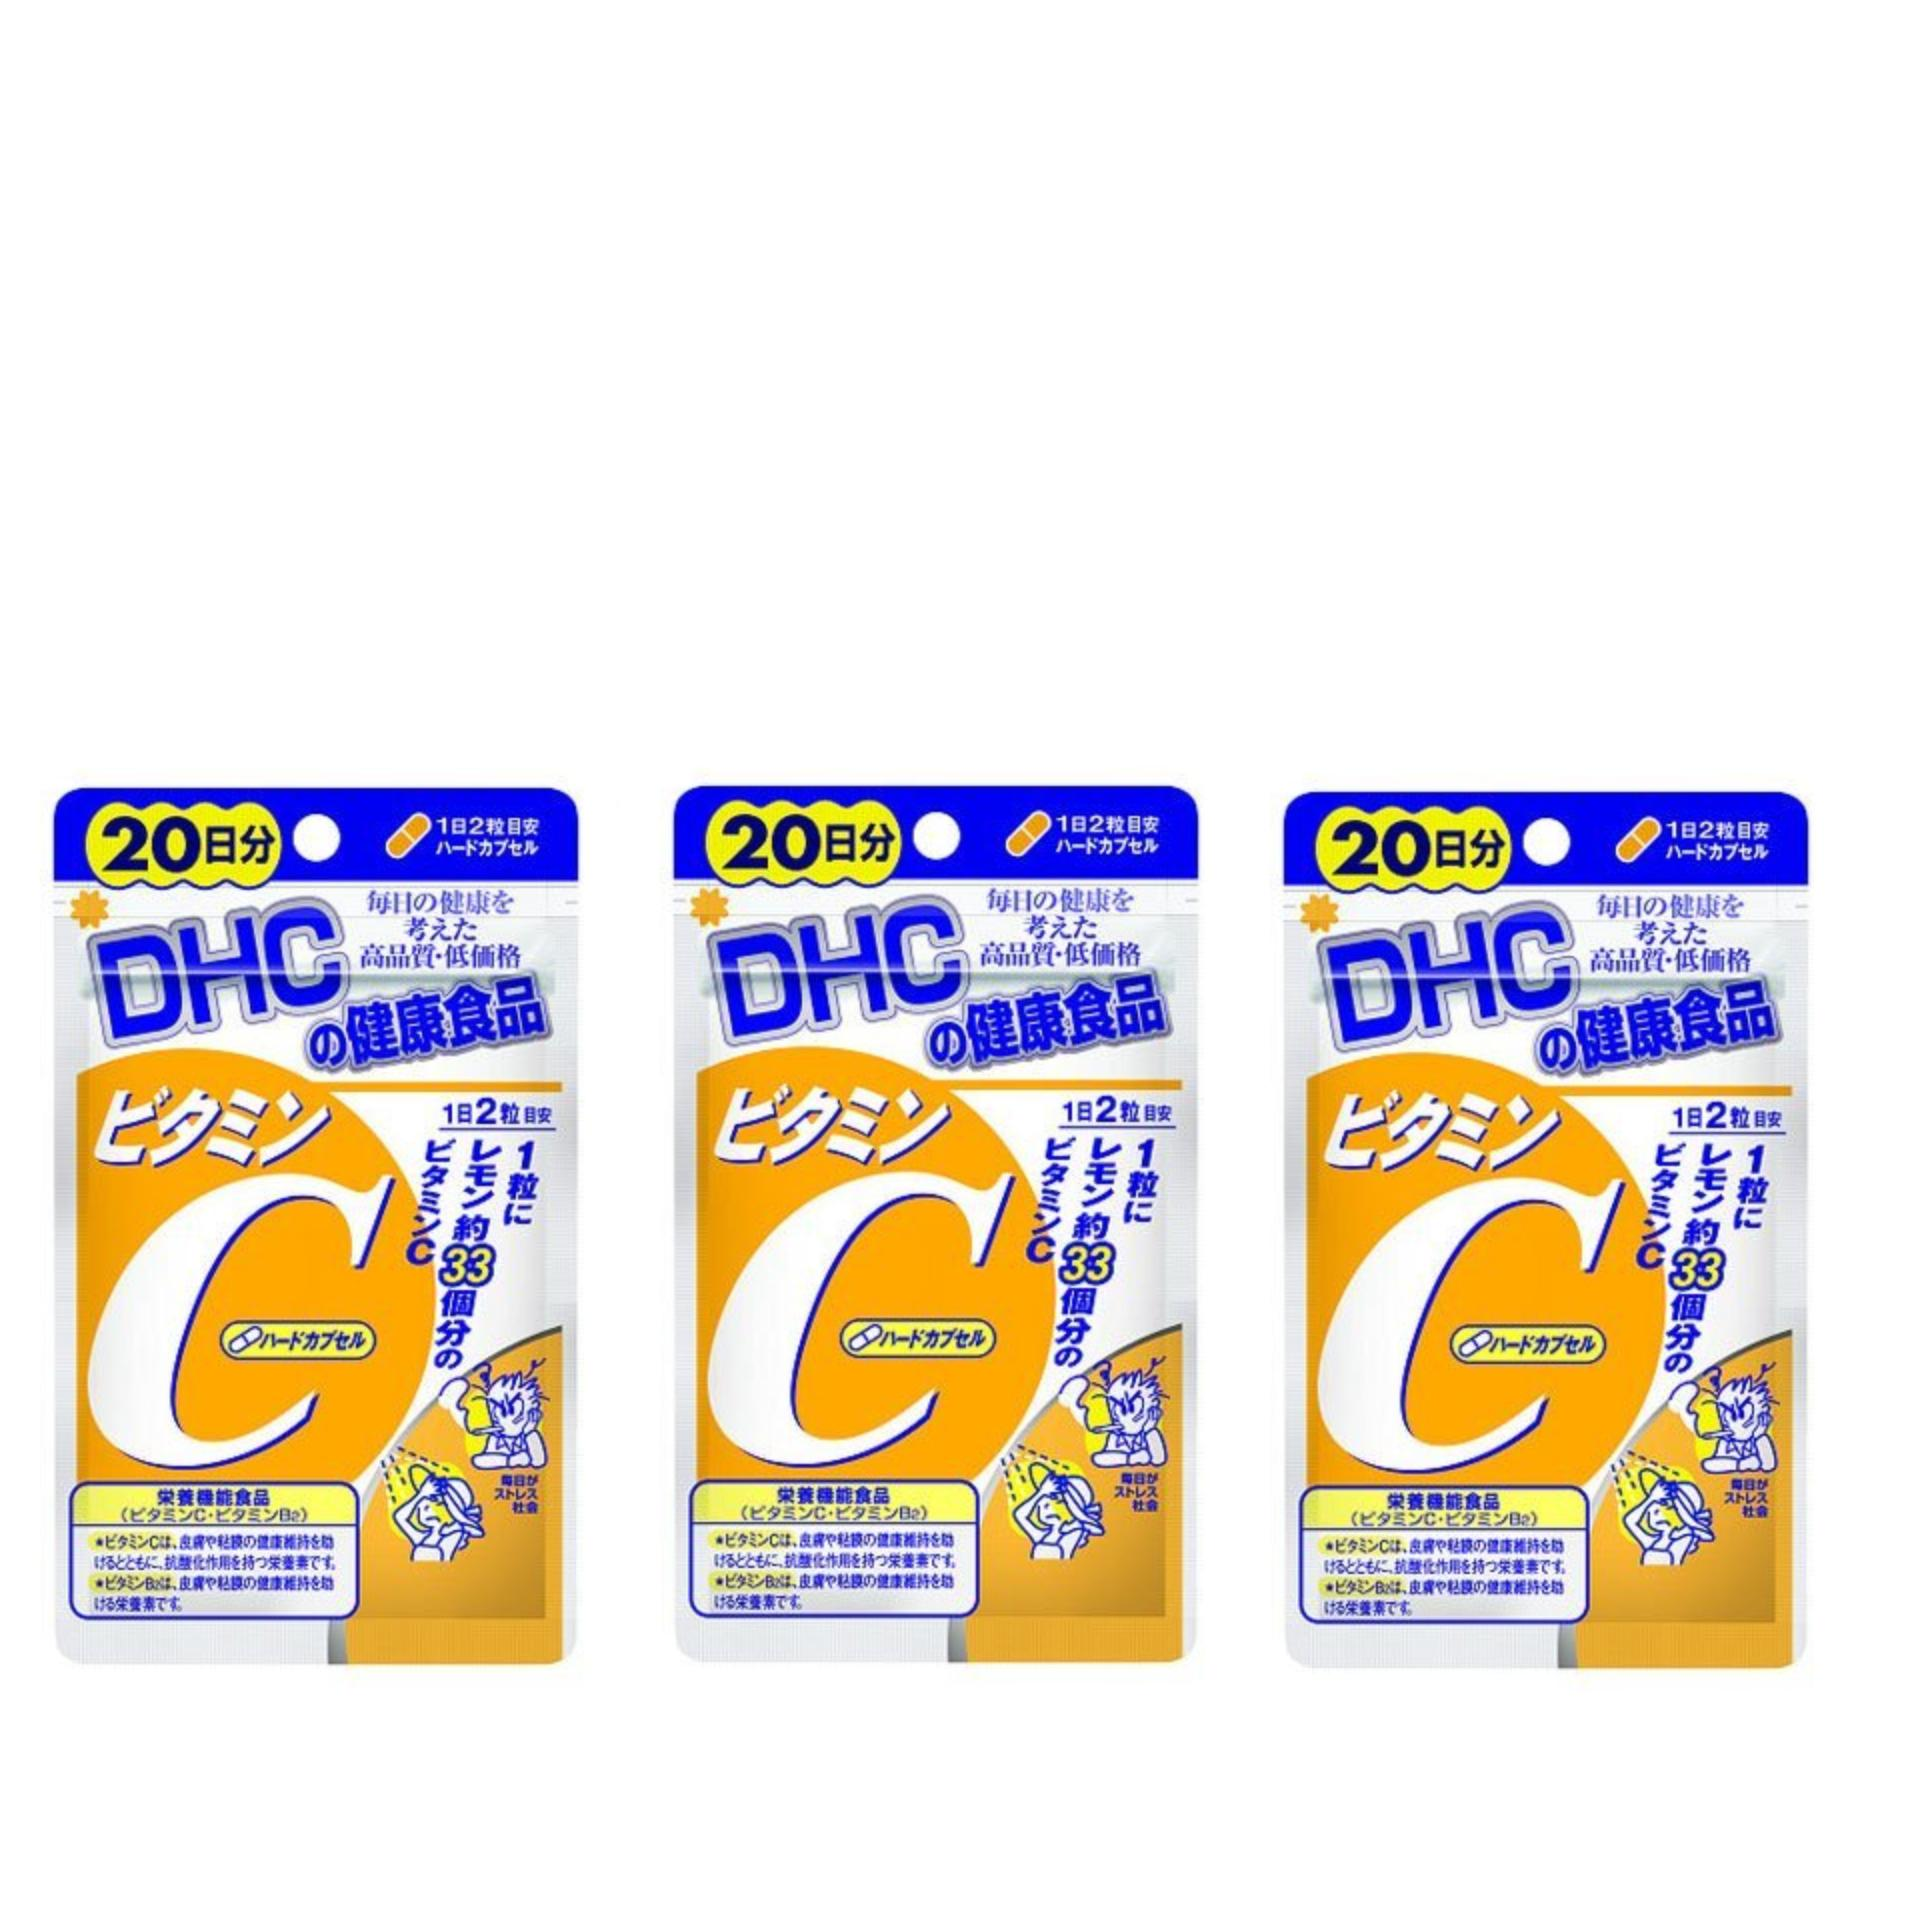 DHC VITAMIN C 20 days pack set of 3